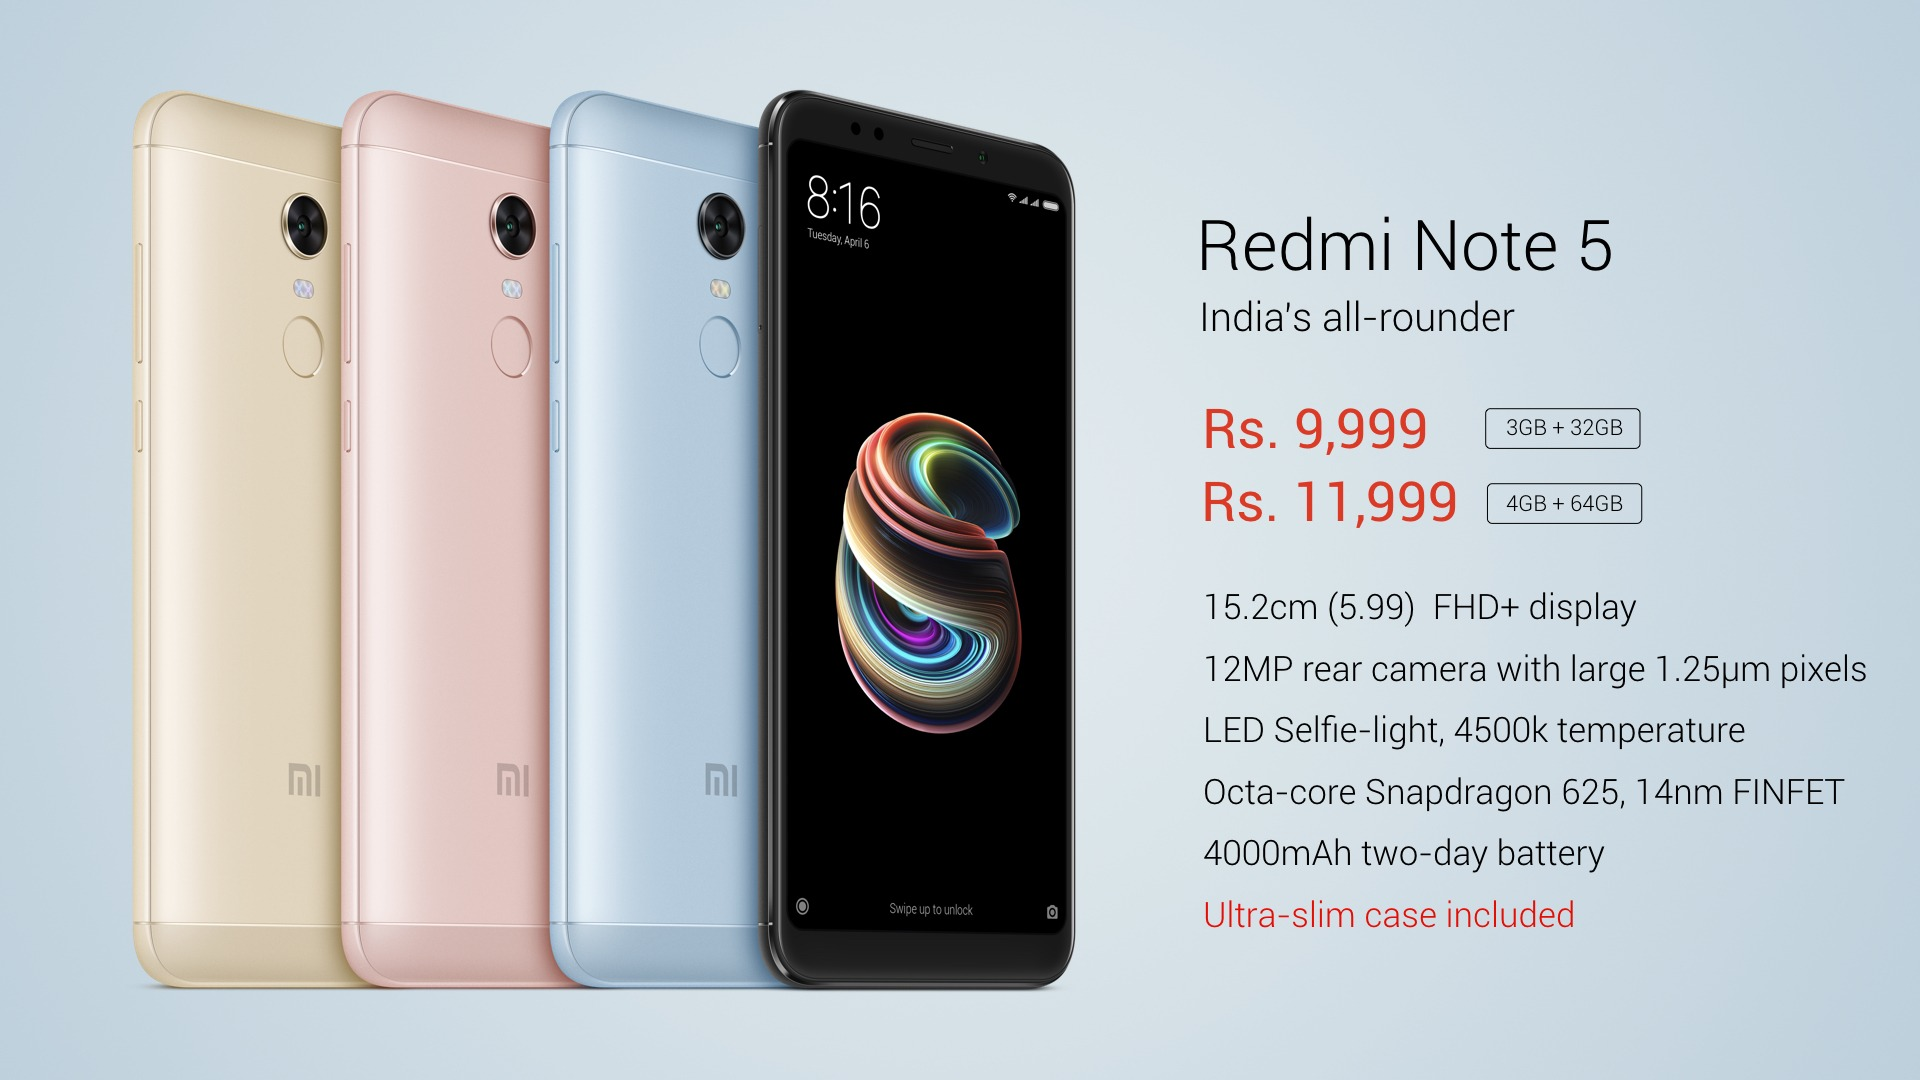 Xiaomi Redmi Note 5 officially launched - Here's all you need to know 6